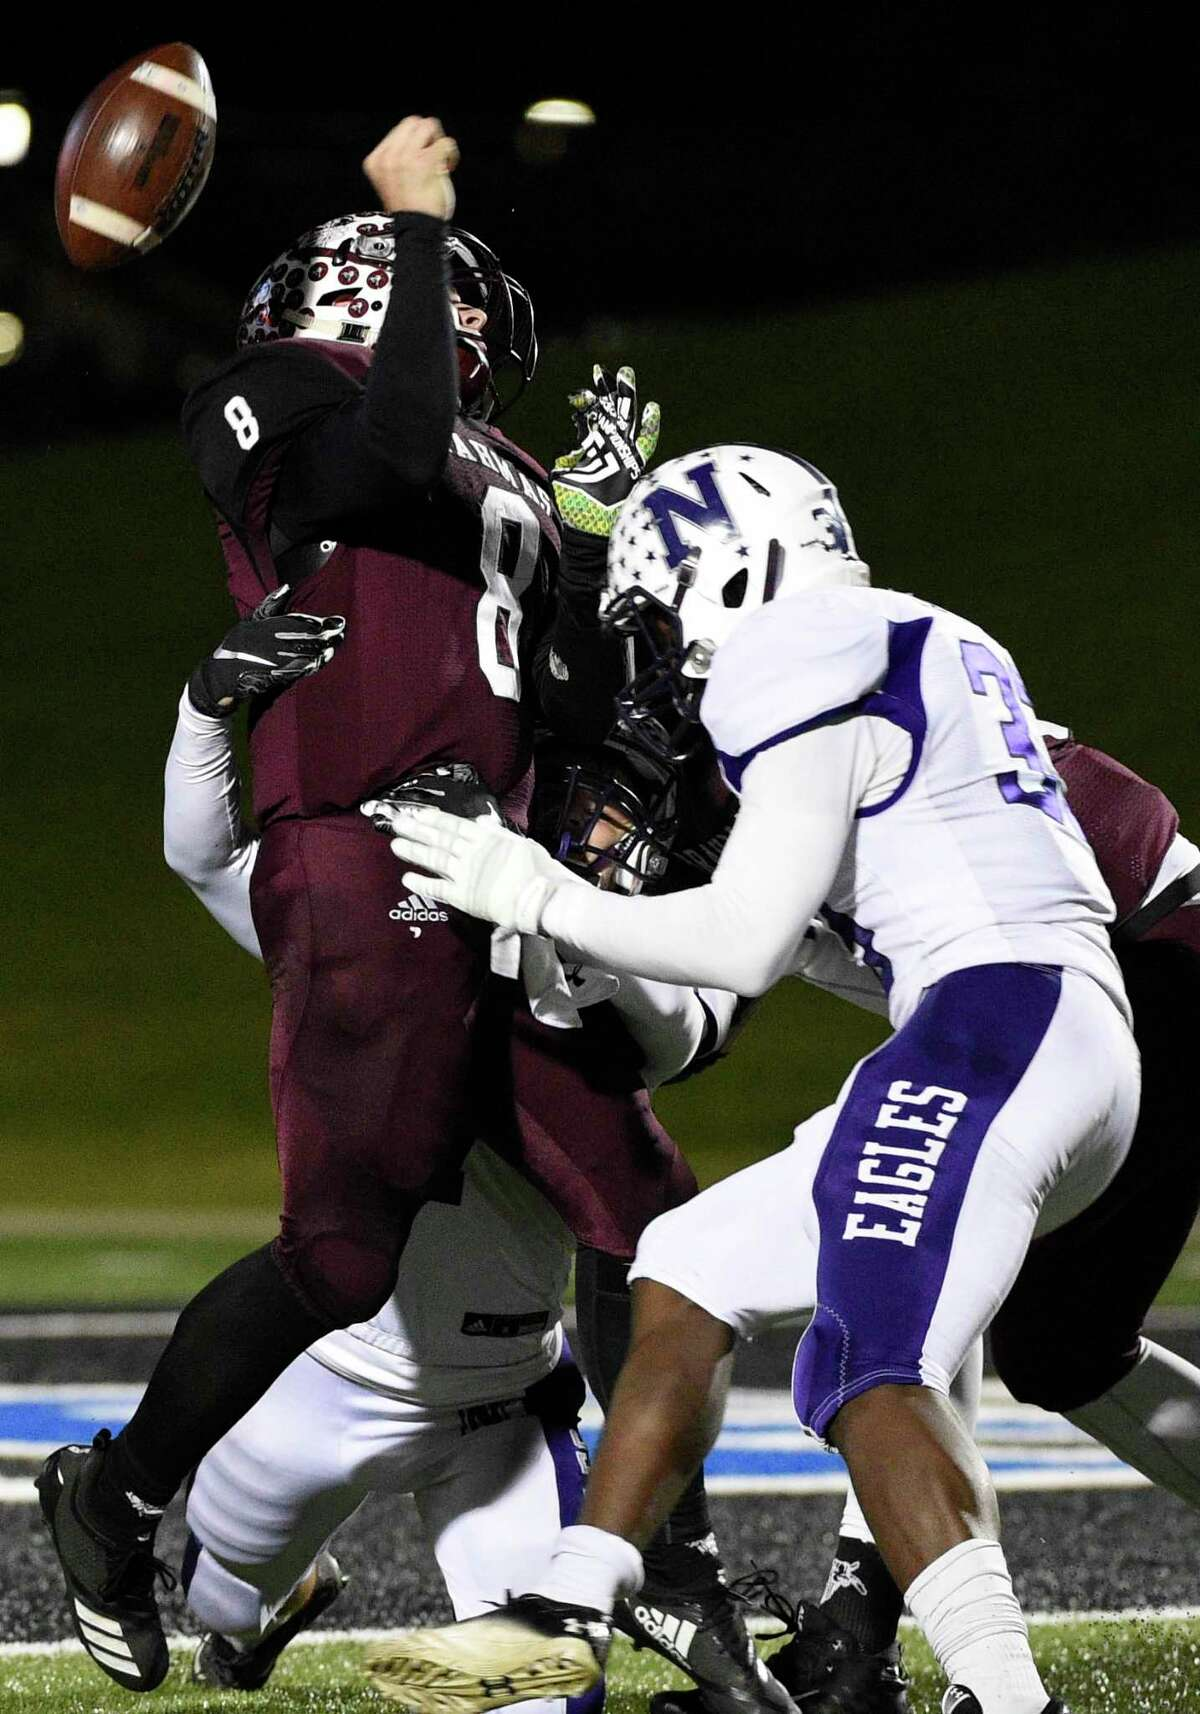 East Bernard quarterback Hunter Goudeau (8) fumbles after being sacked by Newton linebacker Jadrian McGraw, right, on the last play of the game during the second half of a 3A State semi-final high school football playoff game, Friday, Dec. 14, 2018, in New Caney, TX. Newton won the game 21-14.